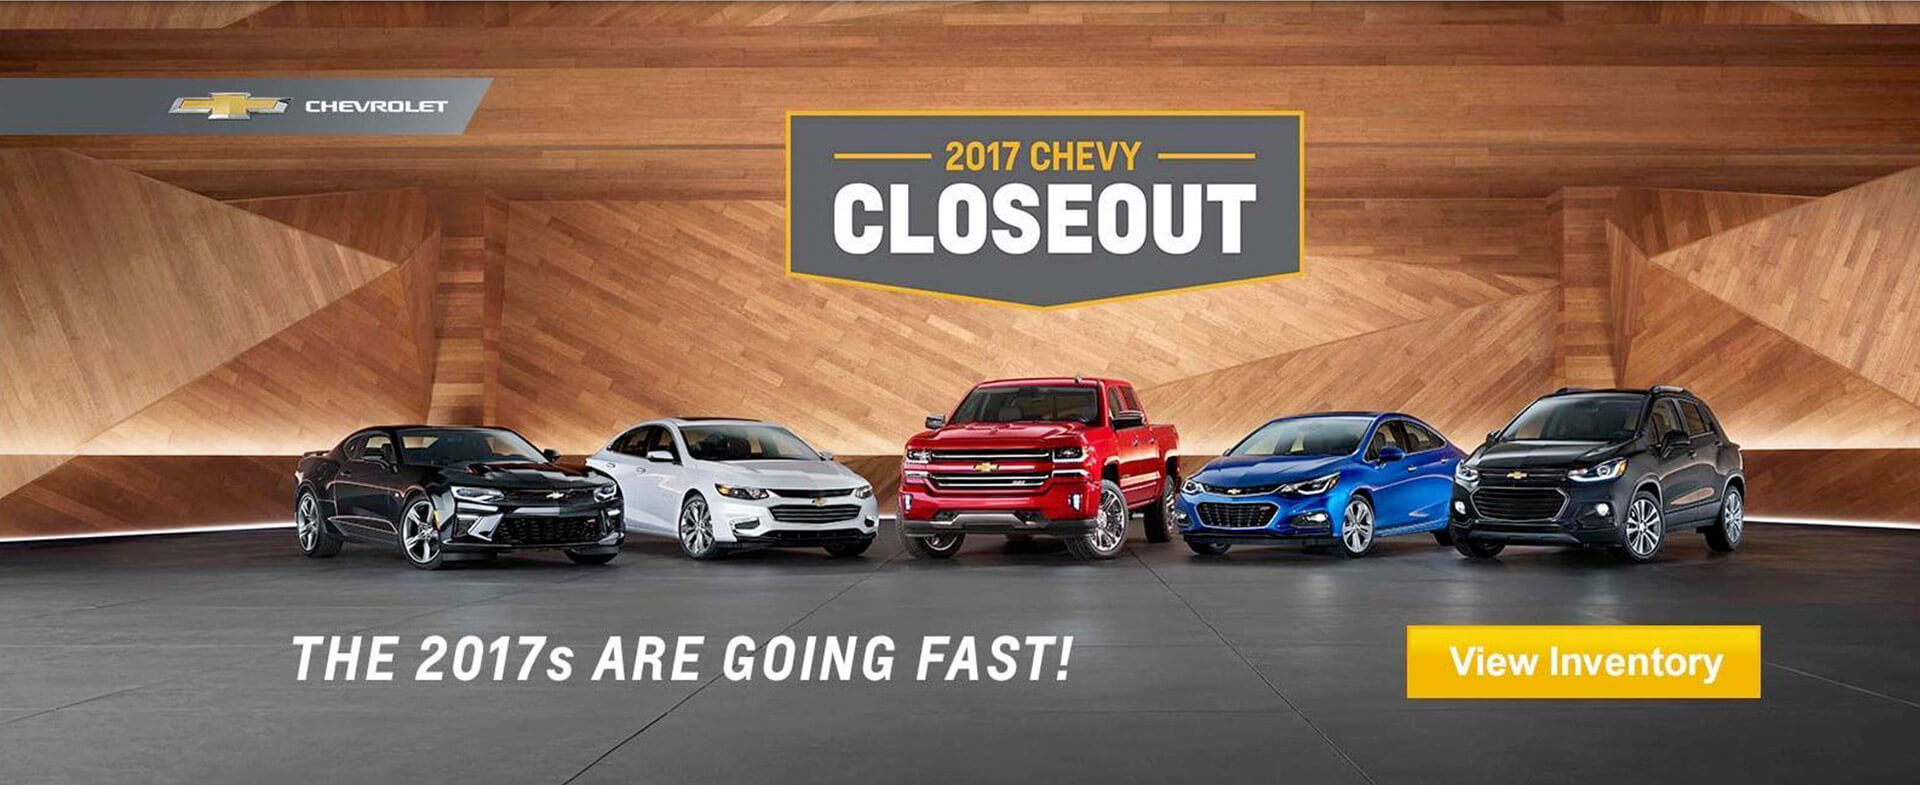 Chevy Close Out 2